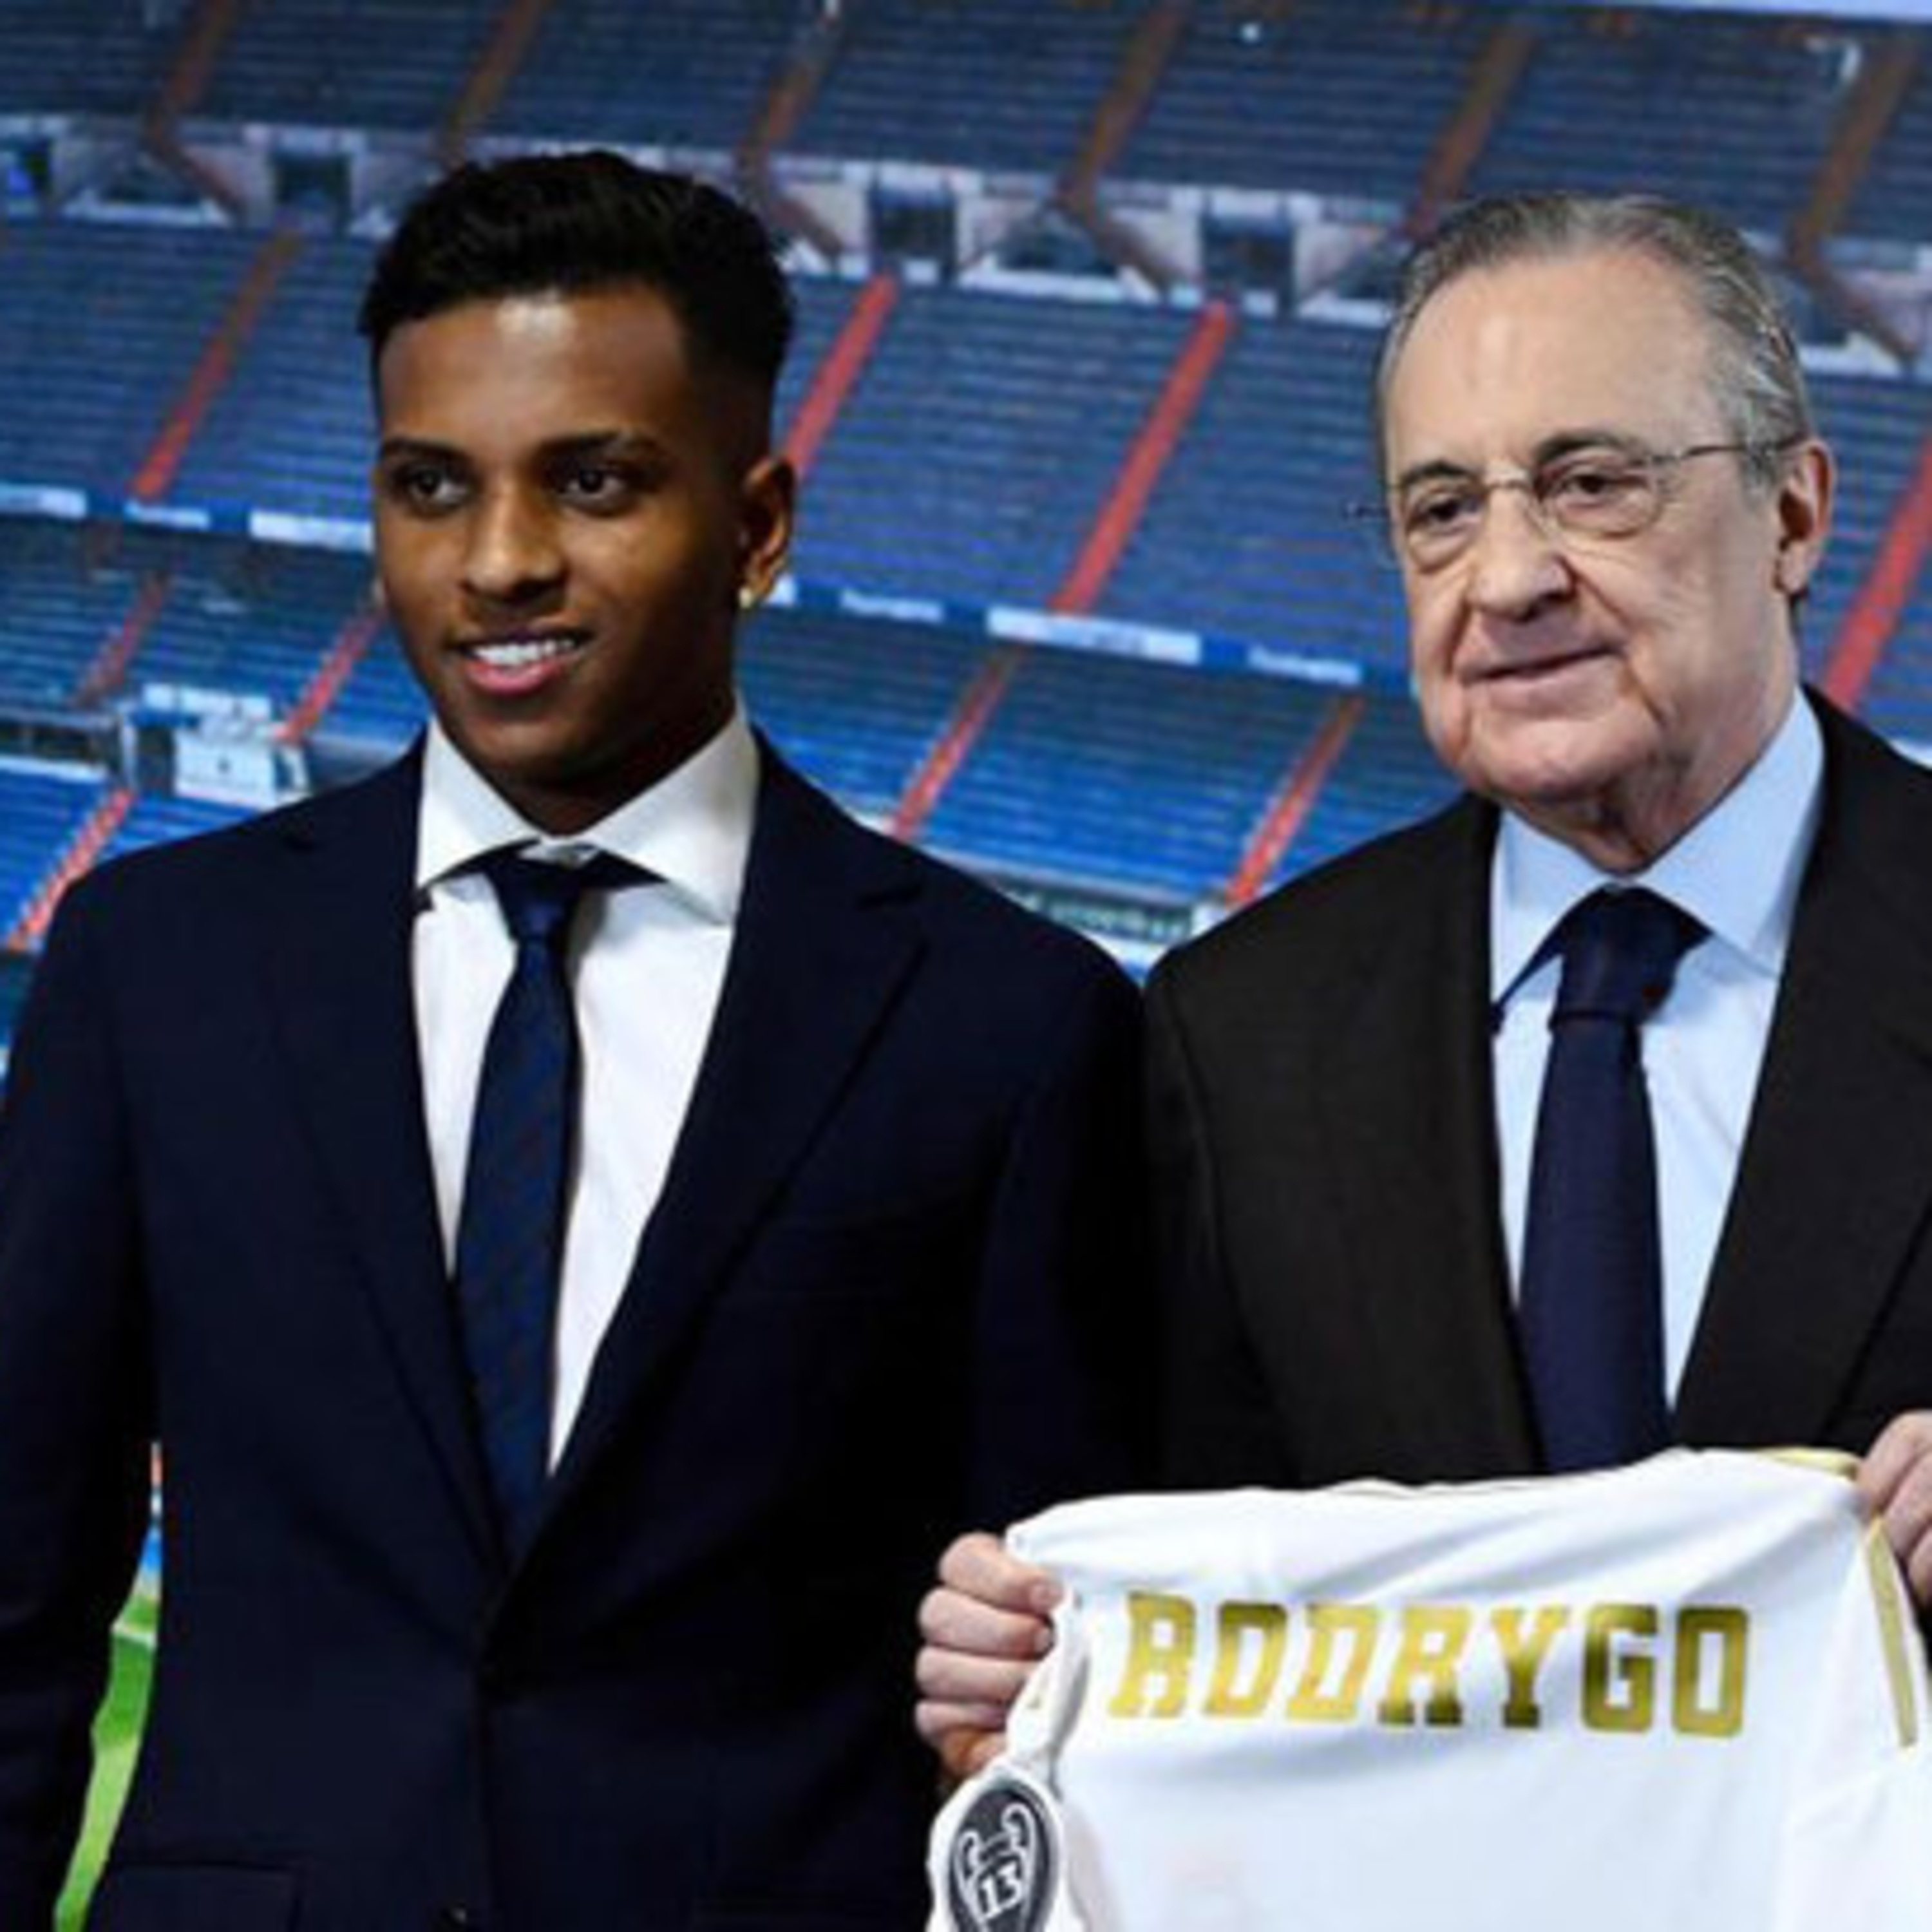 Rodrygo unveiled at Real Madrid